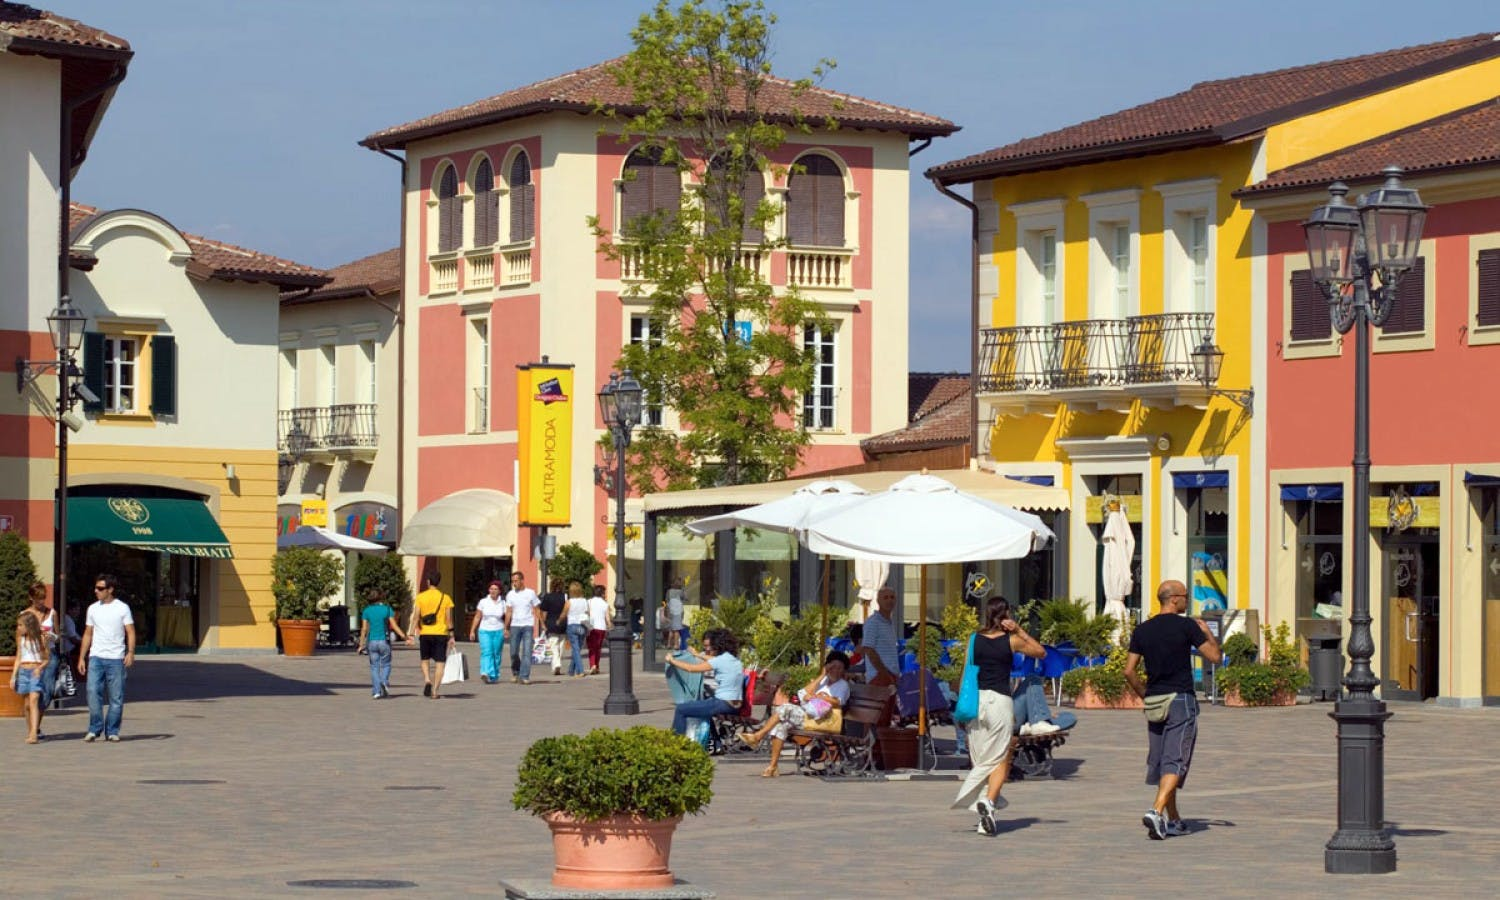 Serravalle designer outlet shopping tour from milan musement for Cheap shopping in milan